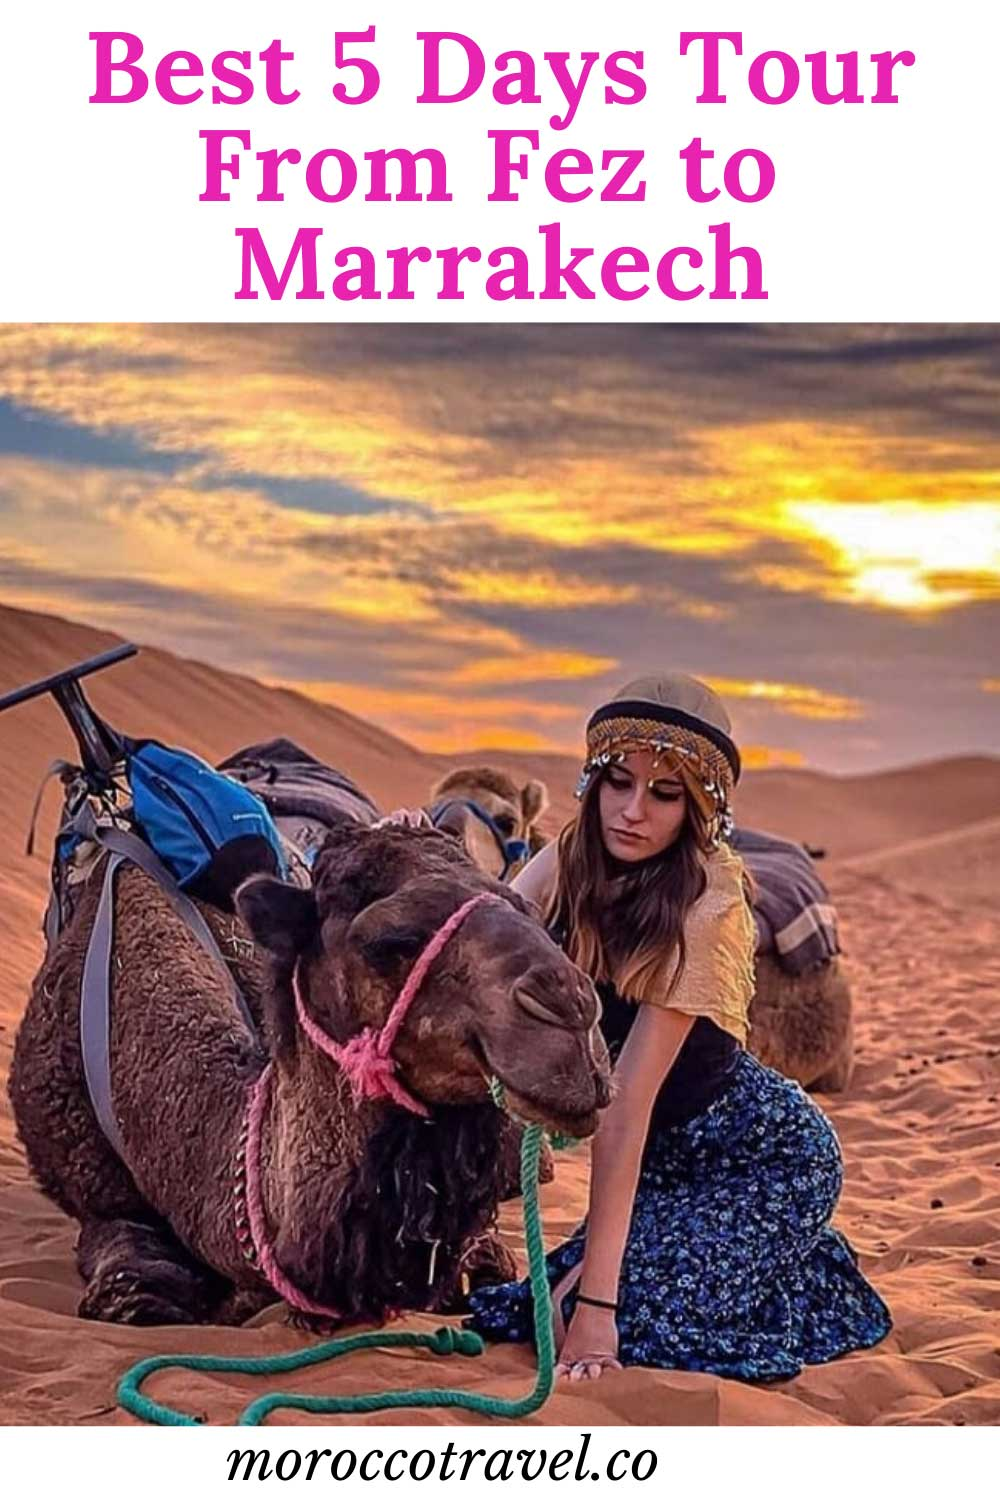 5-days-tour-from-Fes-to-Marrakech-desert